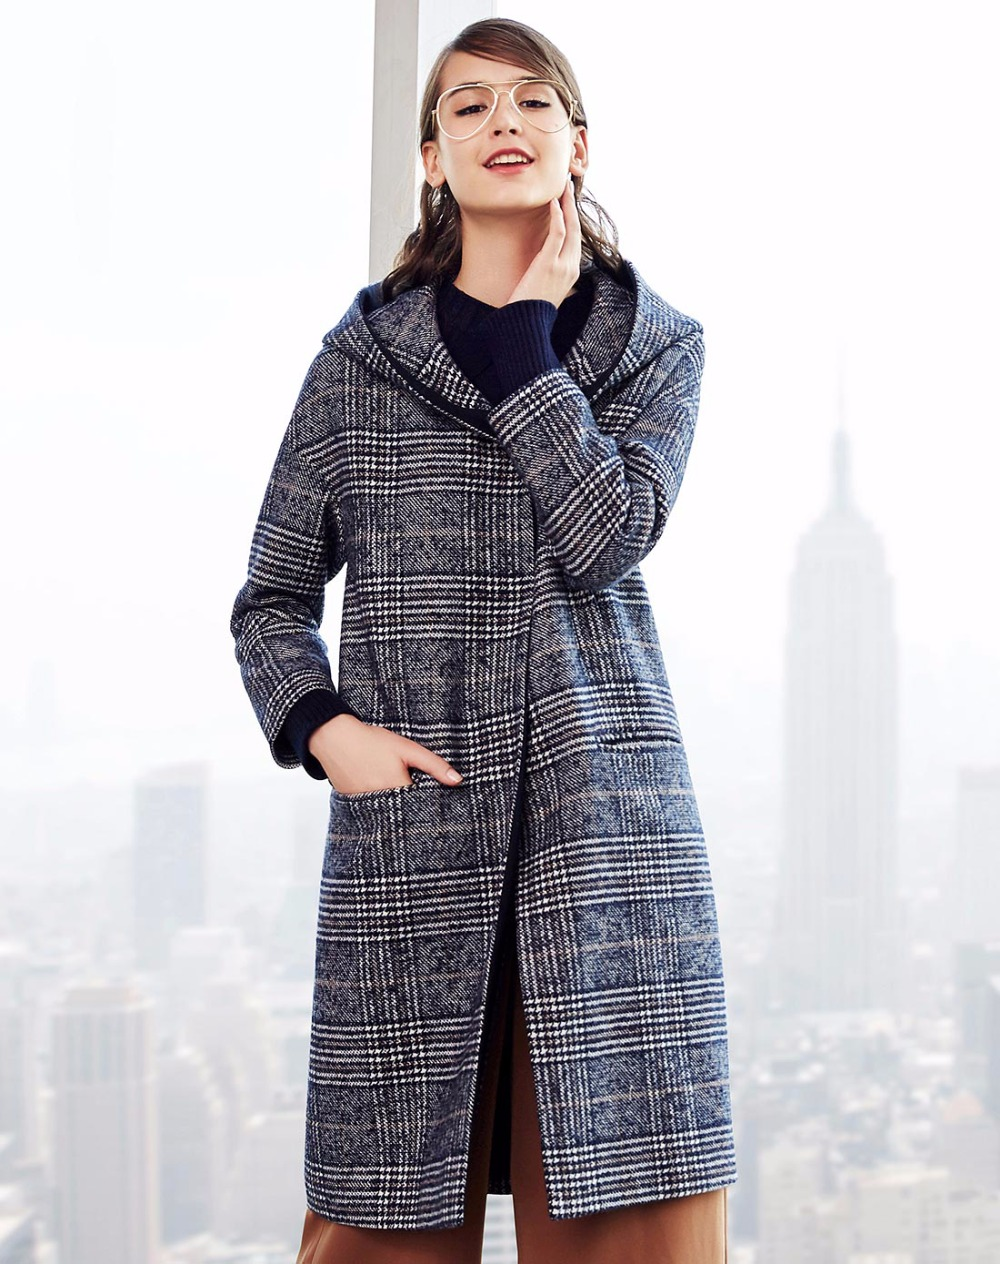 Compare Prices on Plaid Wool Jacket- Online Shopping/Buy Low Price ...